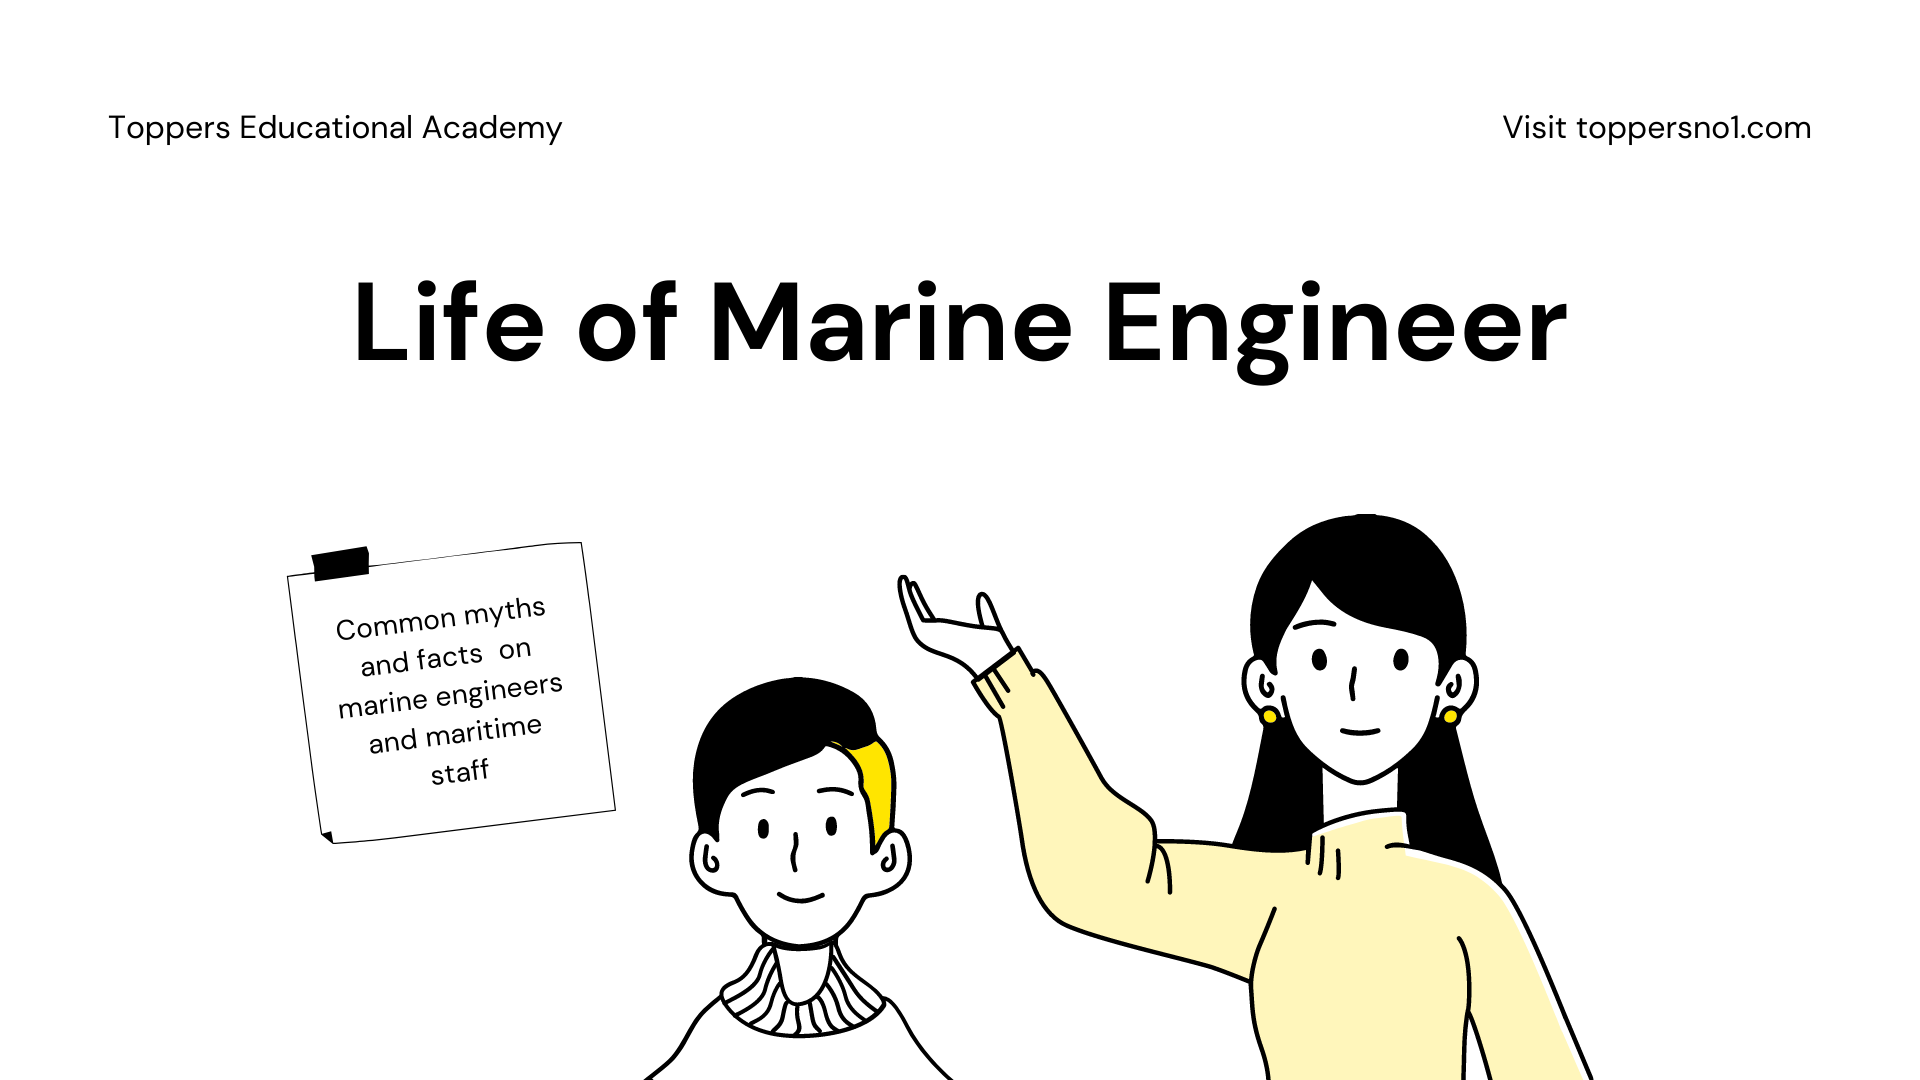 Common myths on marine engineers